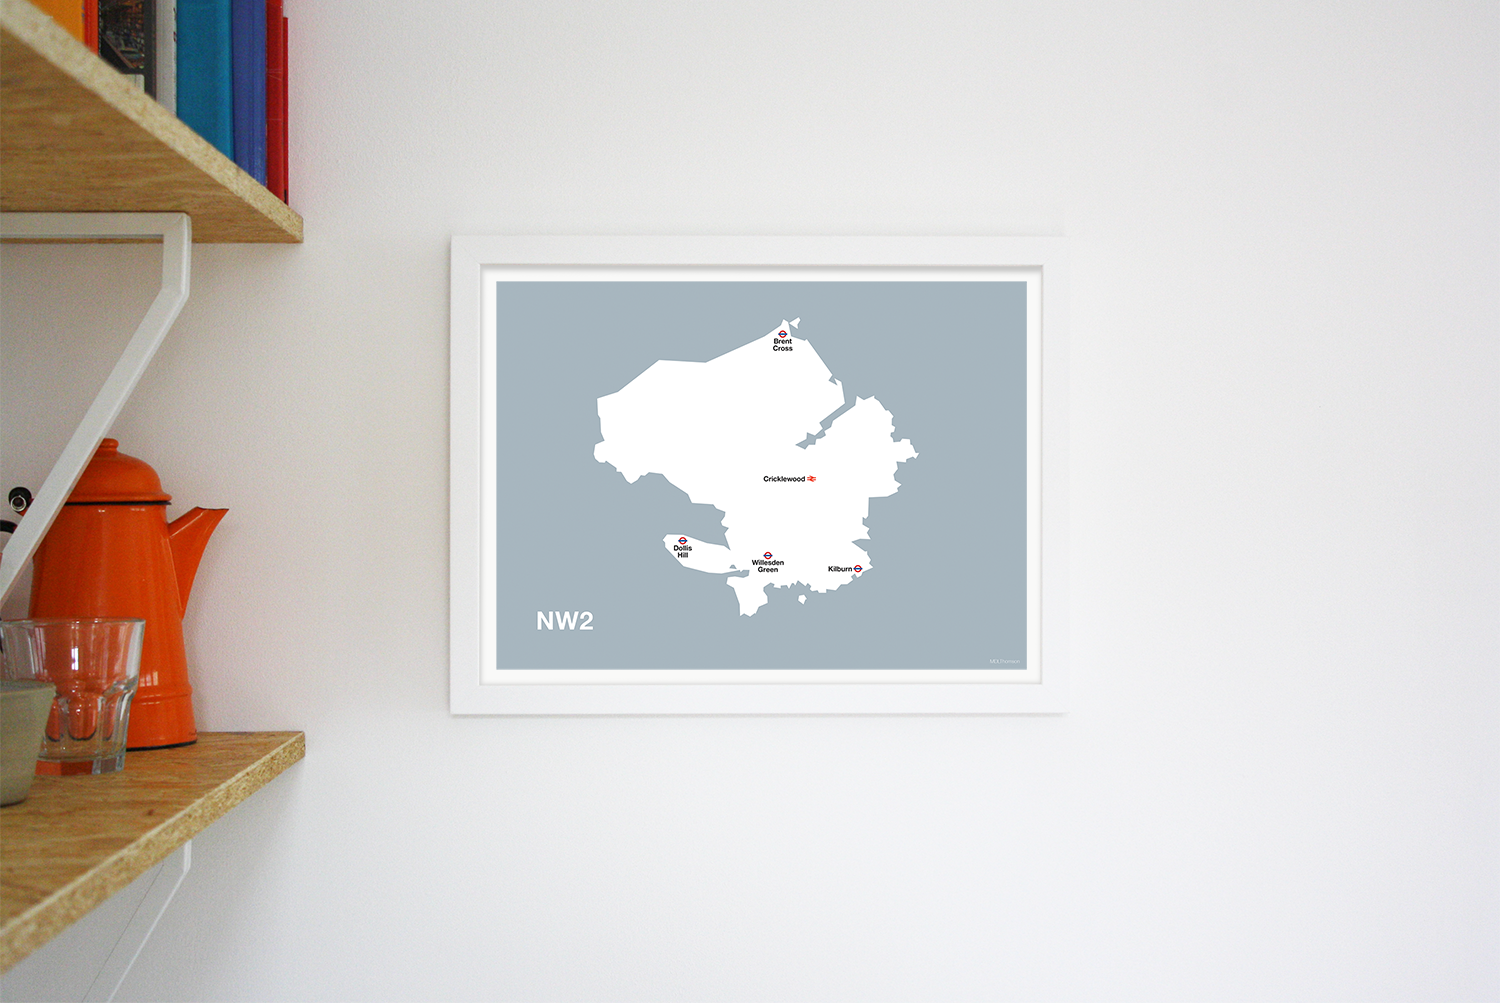 Place in Print MDLThomson NW2 Postcode Map Art Print Lifestyle